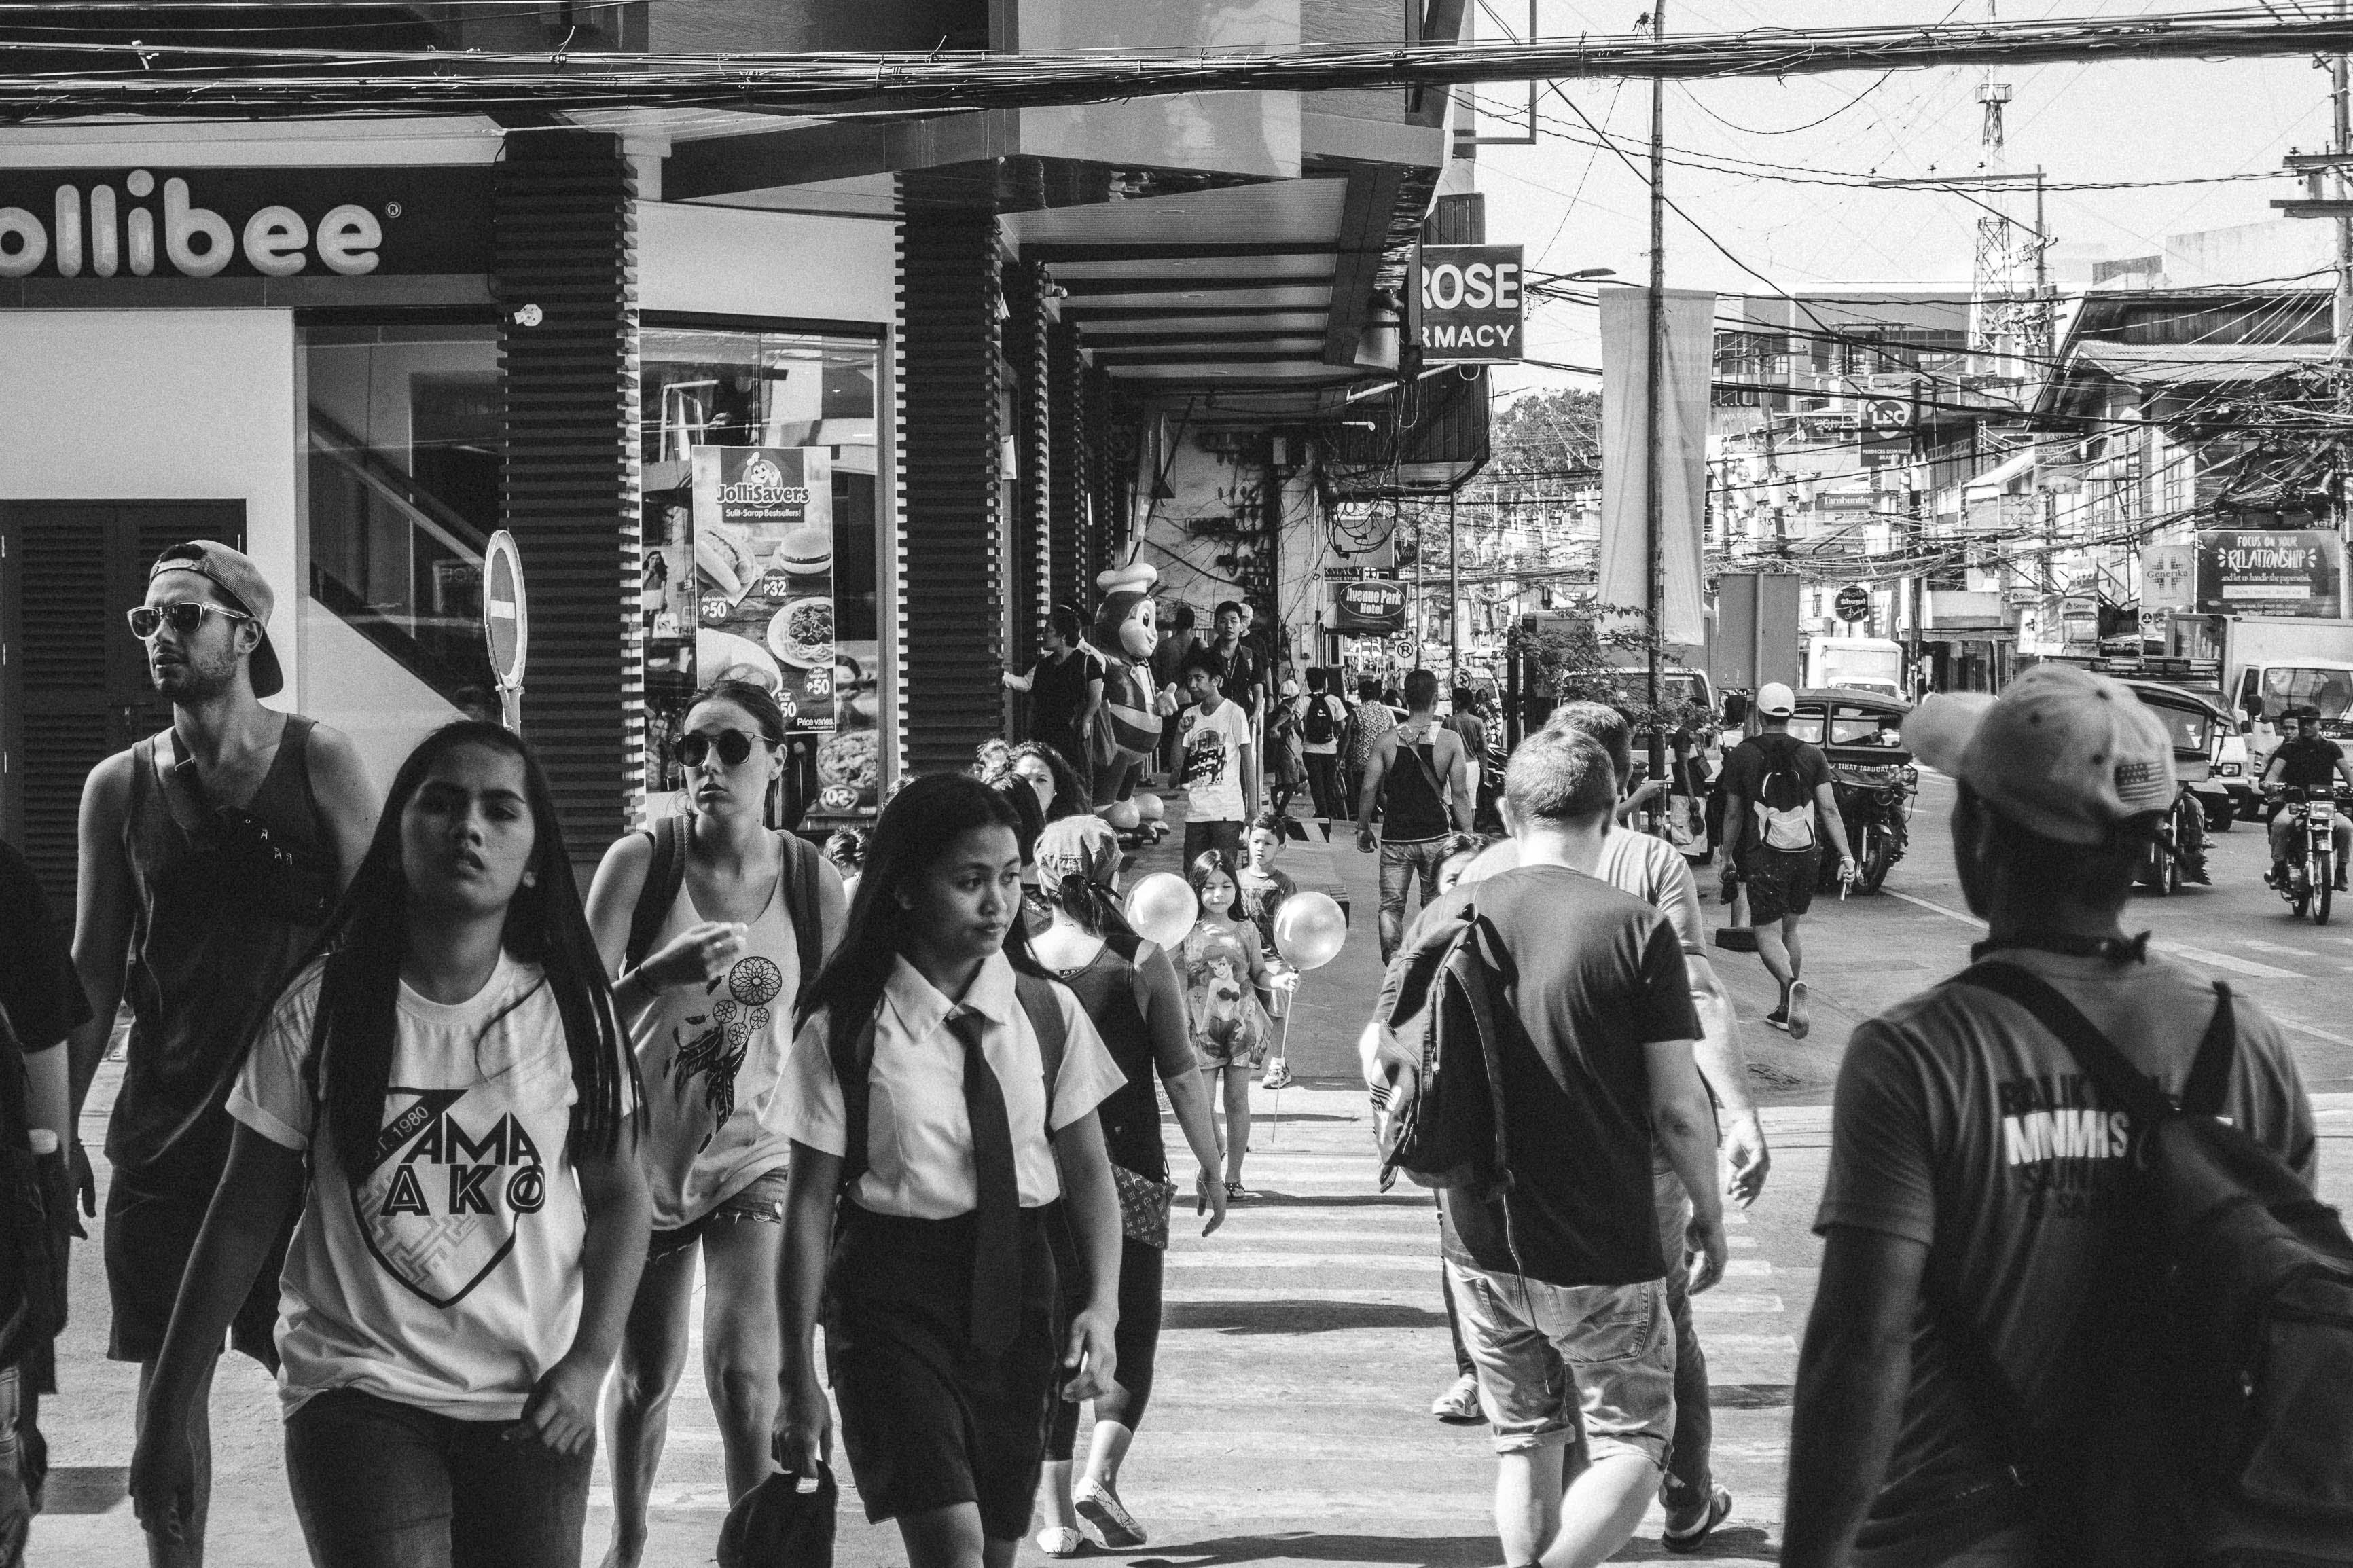 Grayscale Photo of People Walking in the Street